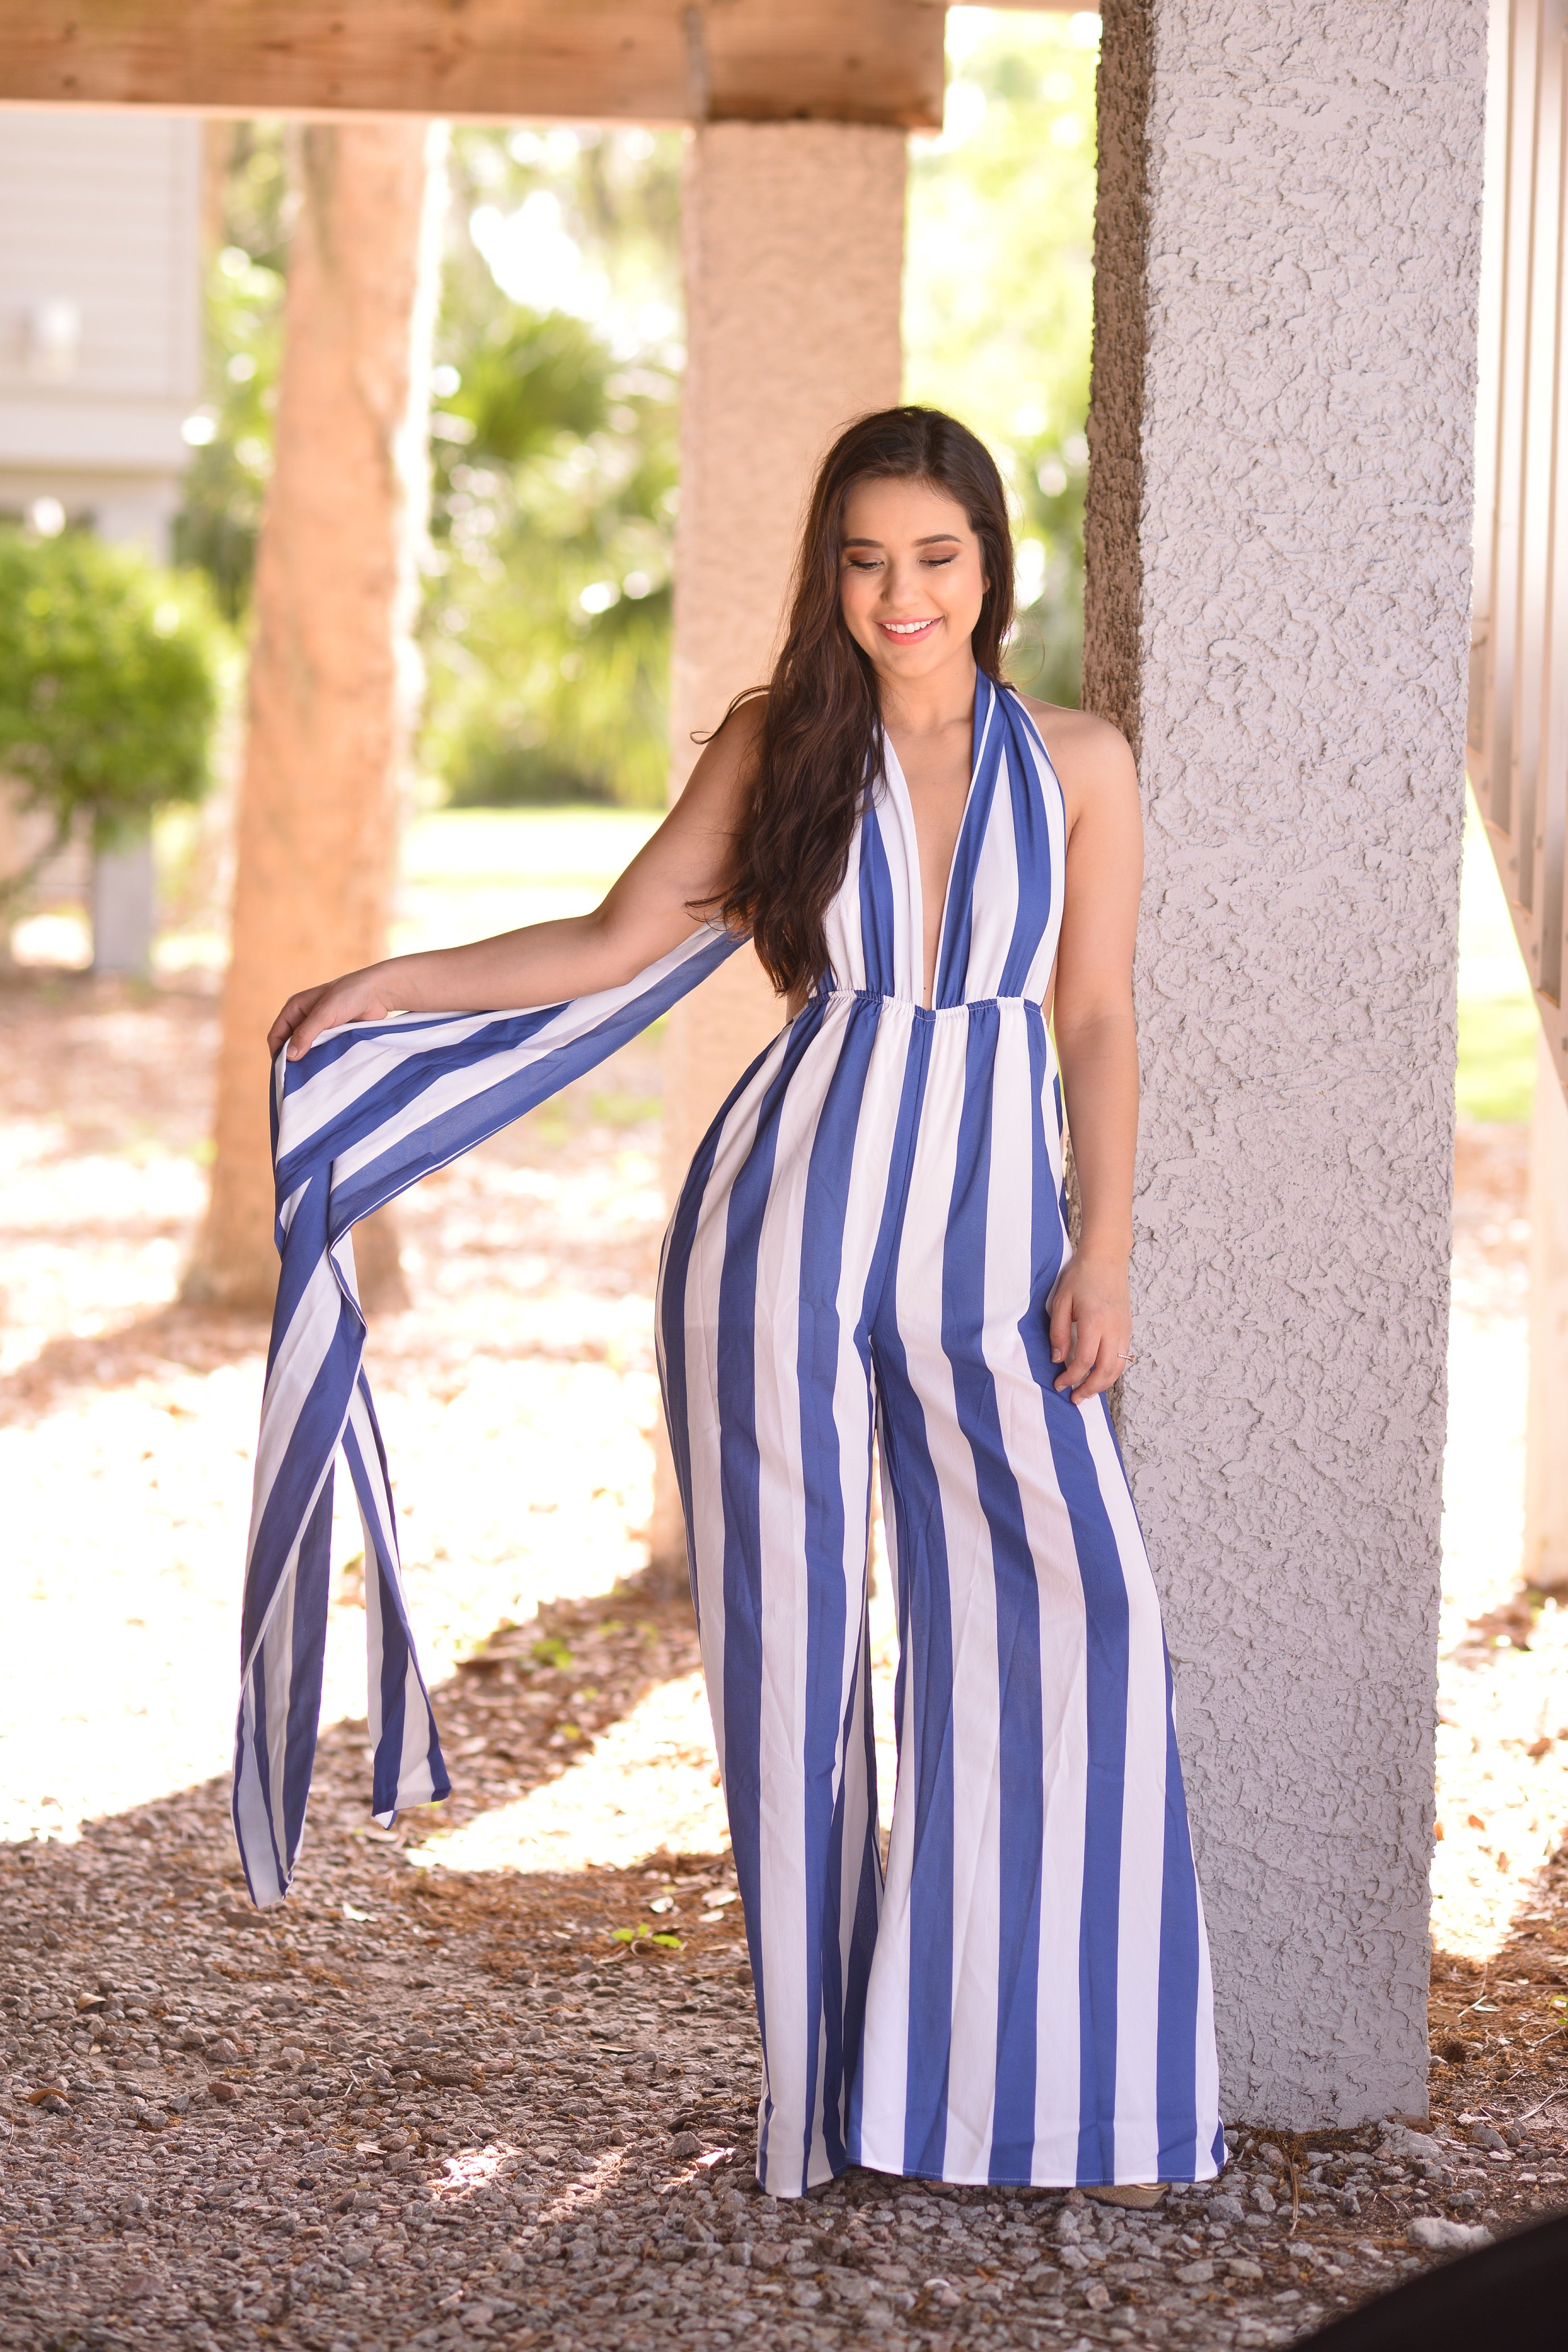 Cotton Candy Stripe Jumpsuit - The Flawless Babe Boutique